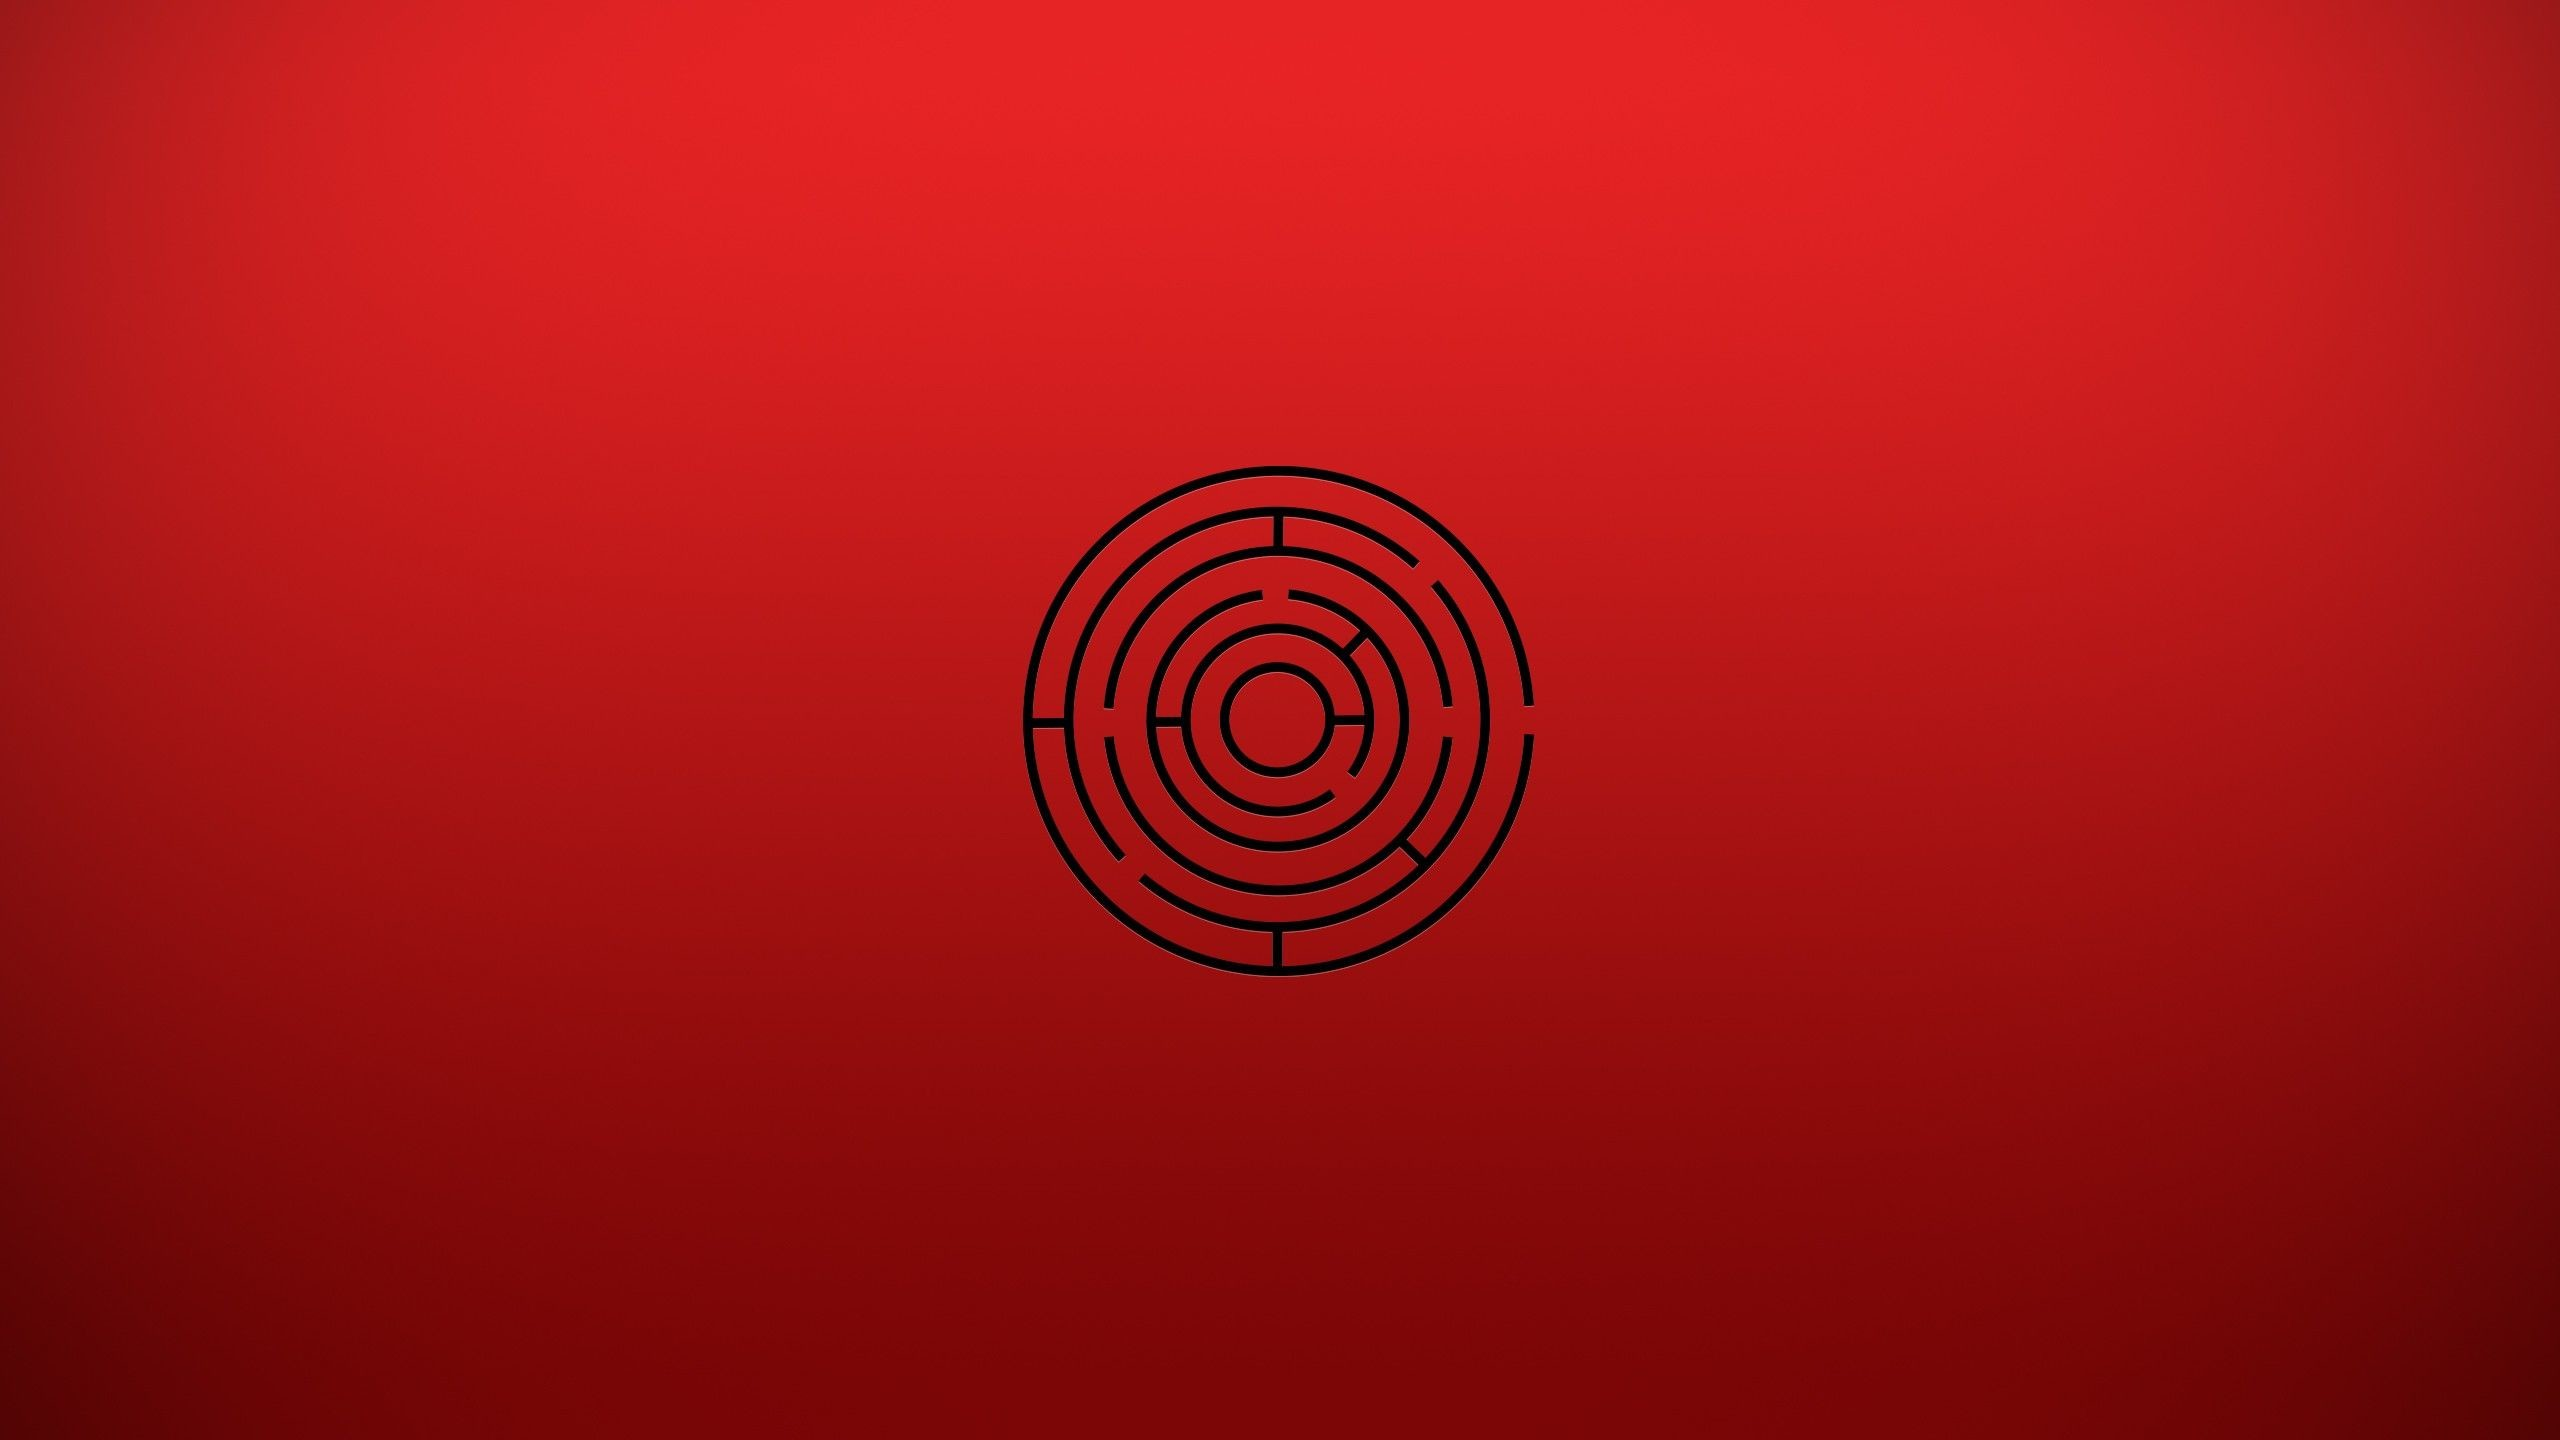 Minimalistic Labyrinth YouTube Channel Cover